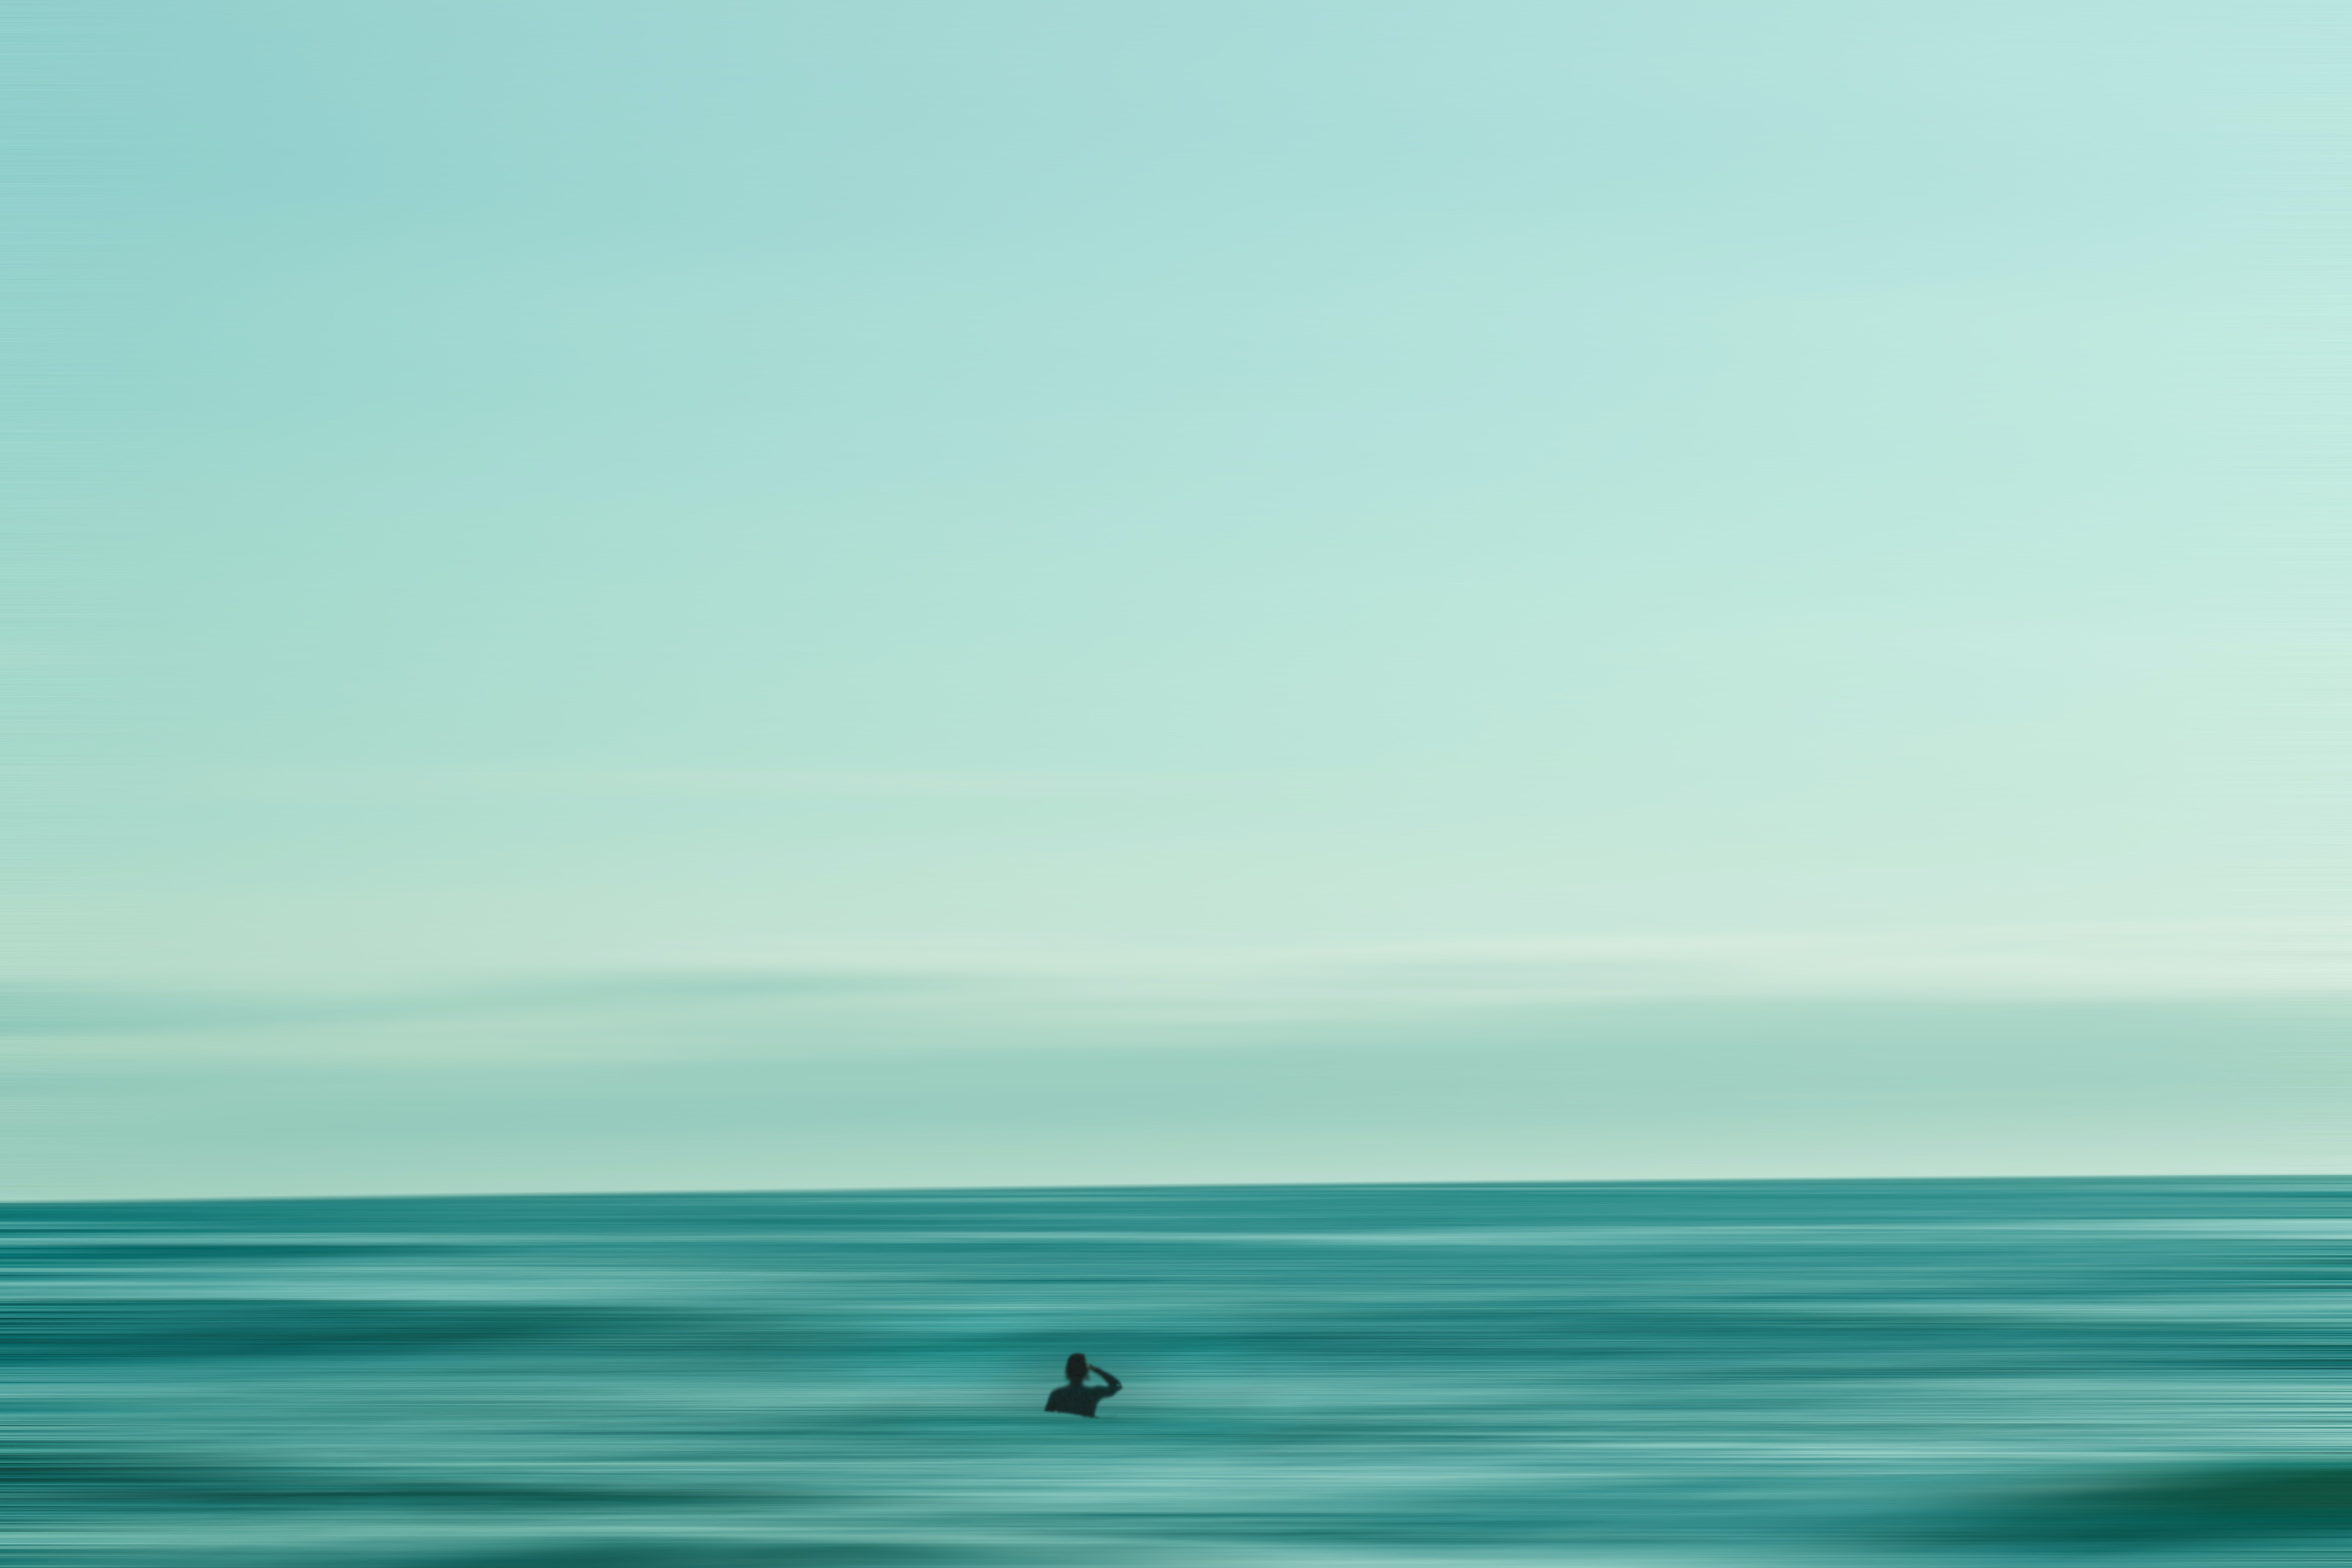 person in middle of ocean during daytime